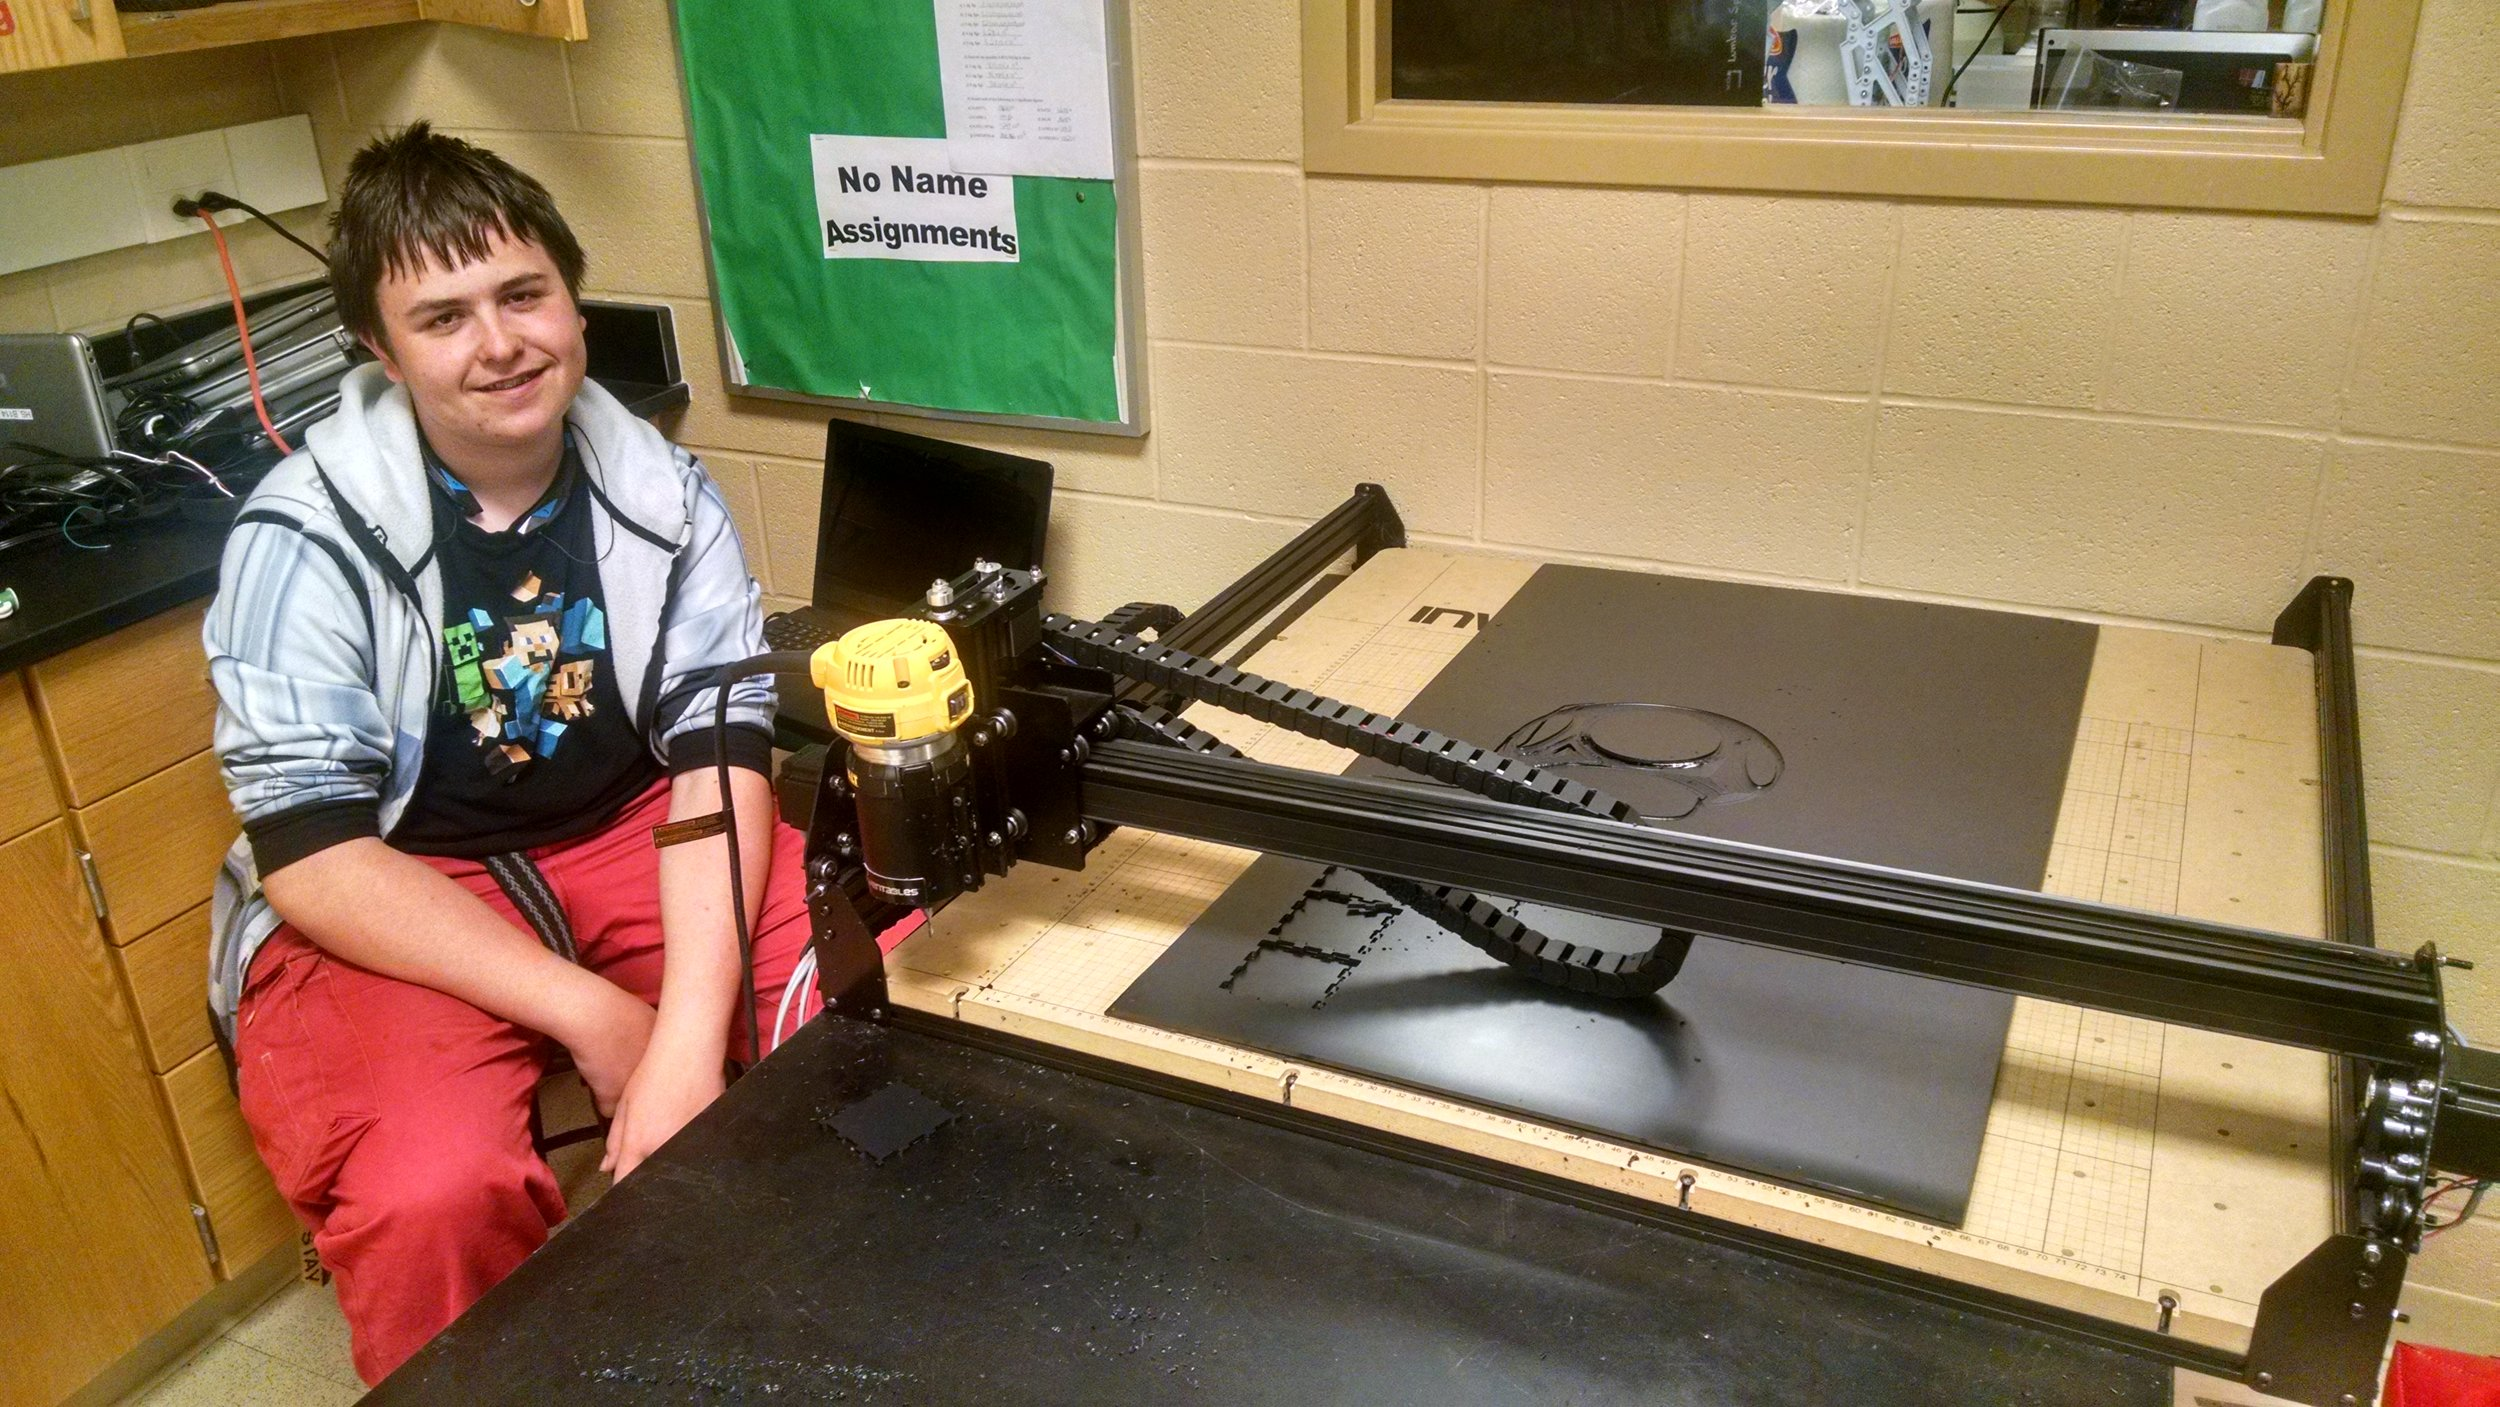 Dagan Kuhn sitting next to the completed X-Carve.